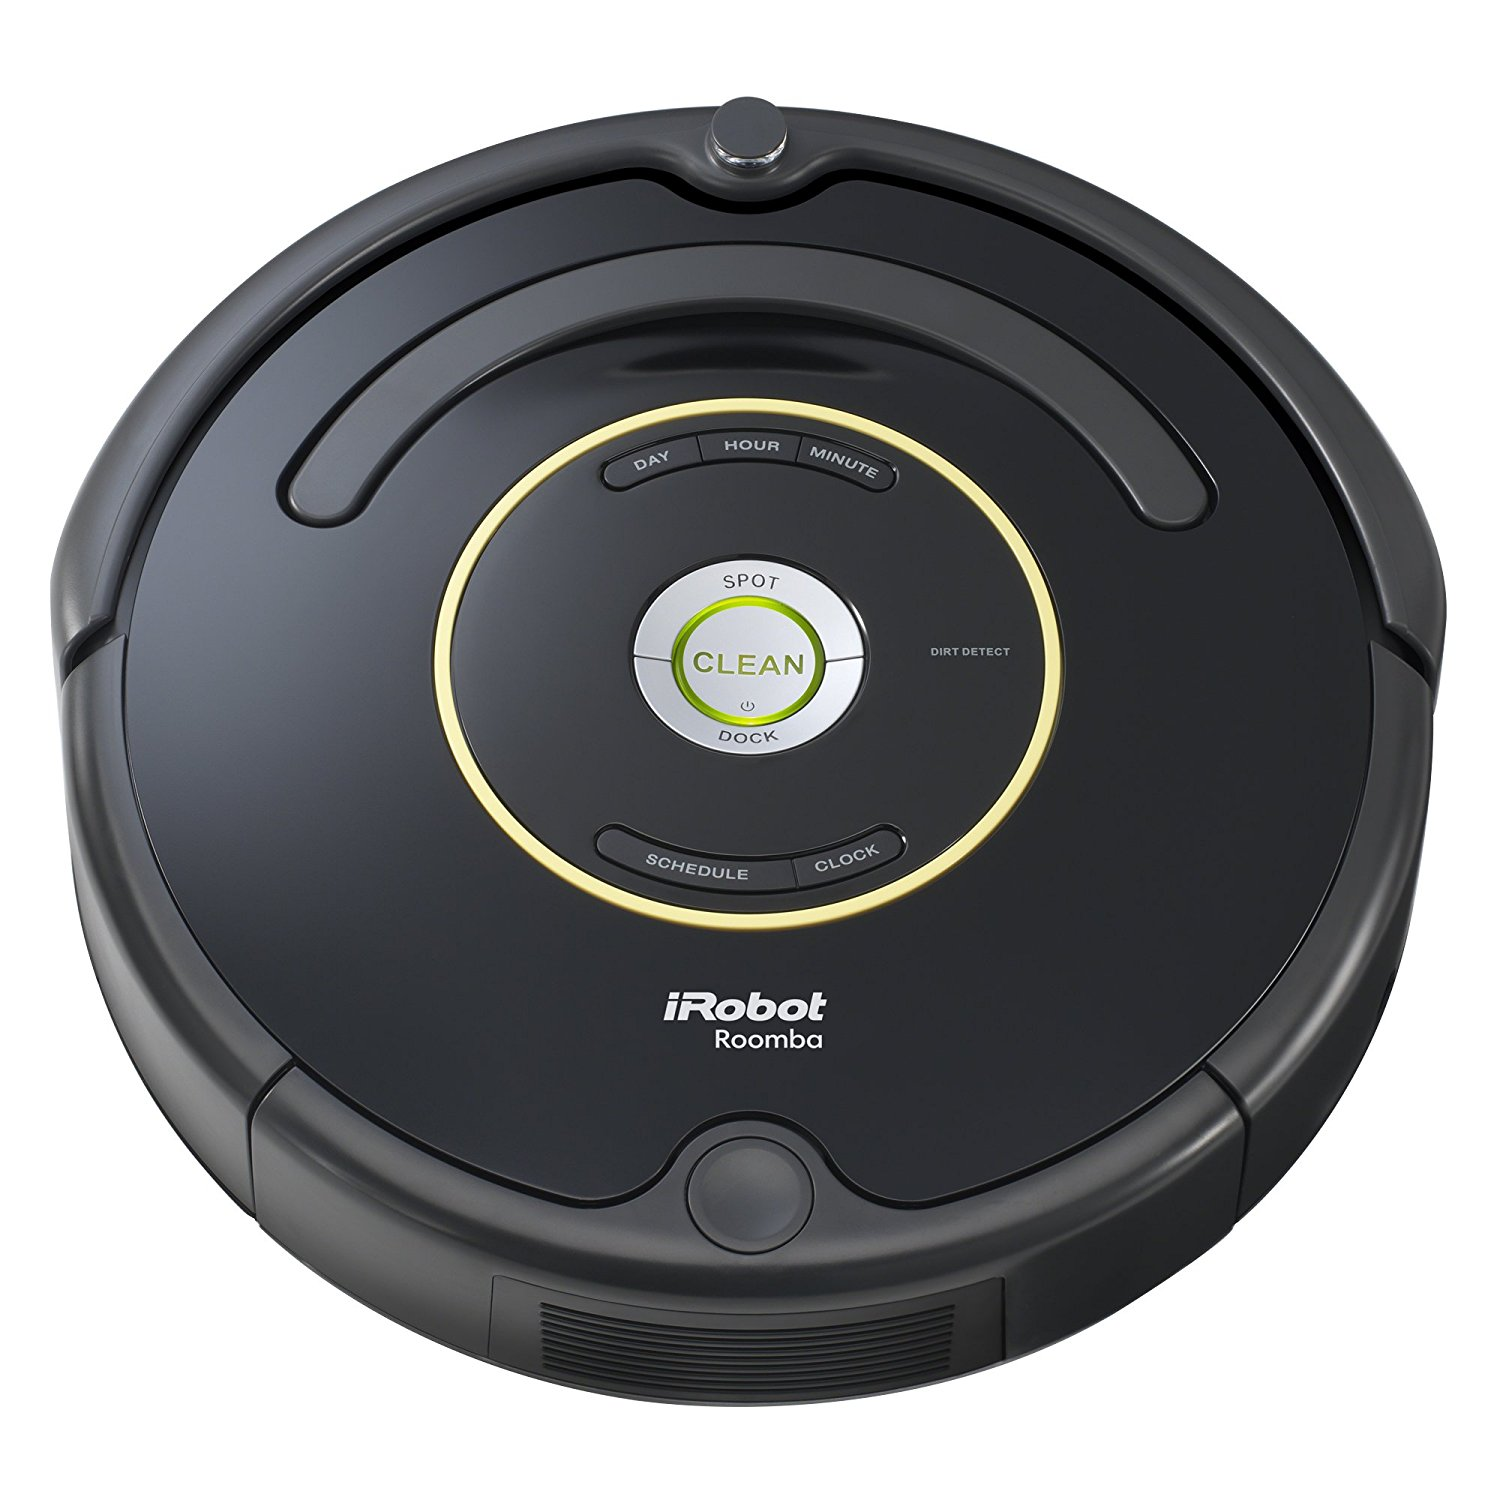 irobot Roomba 650 features, pros and cons